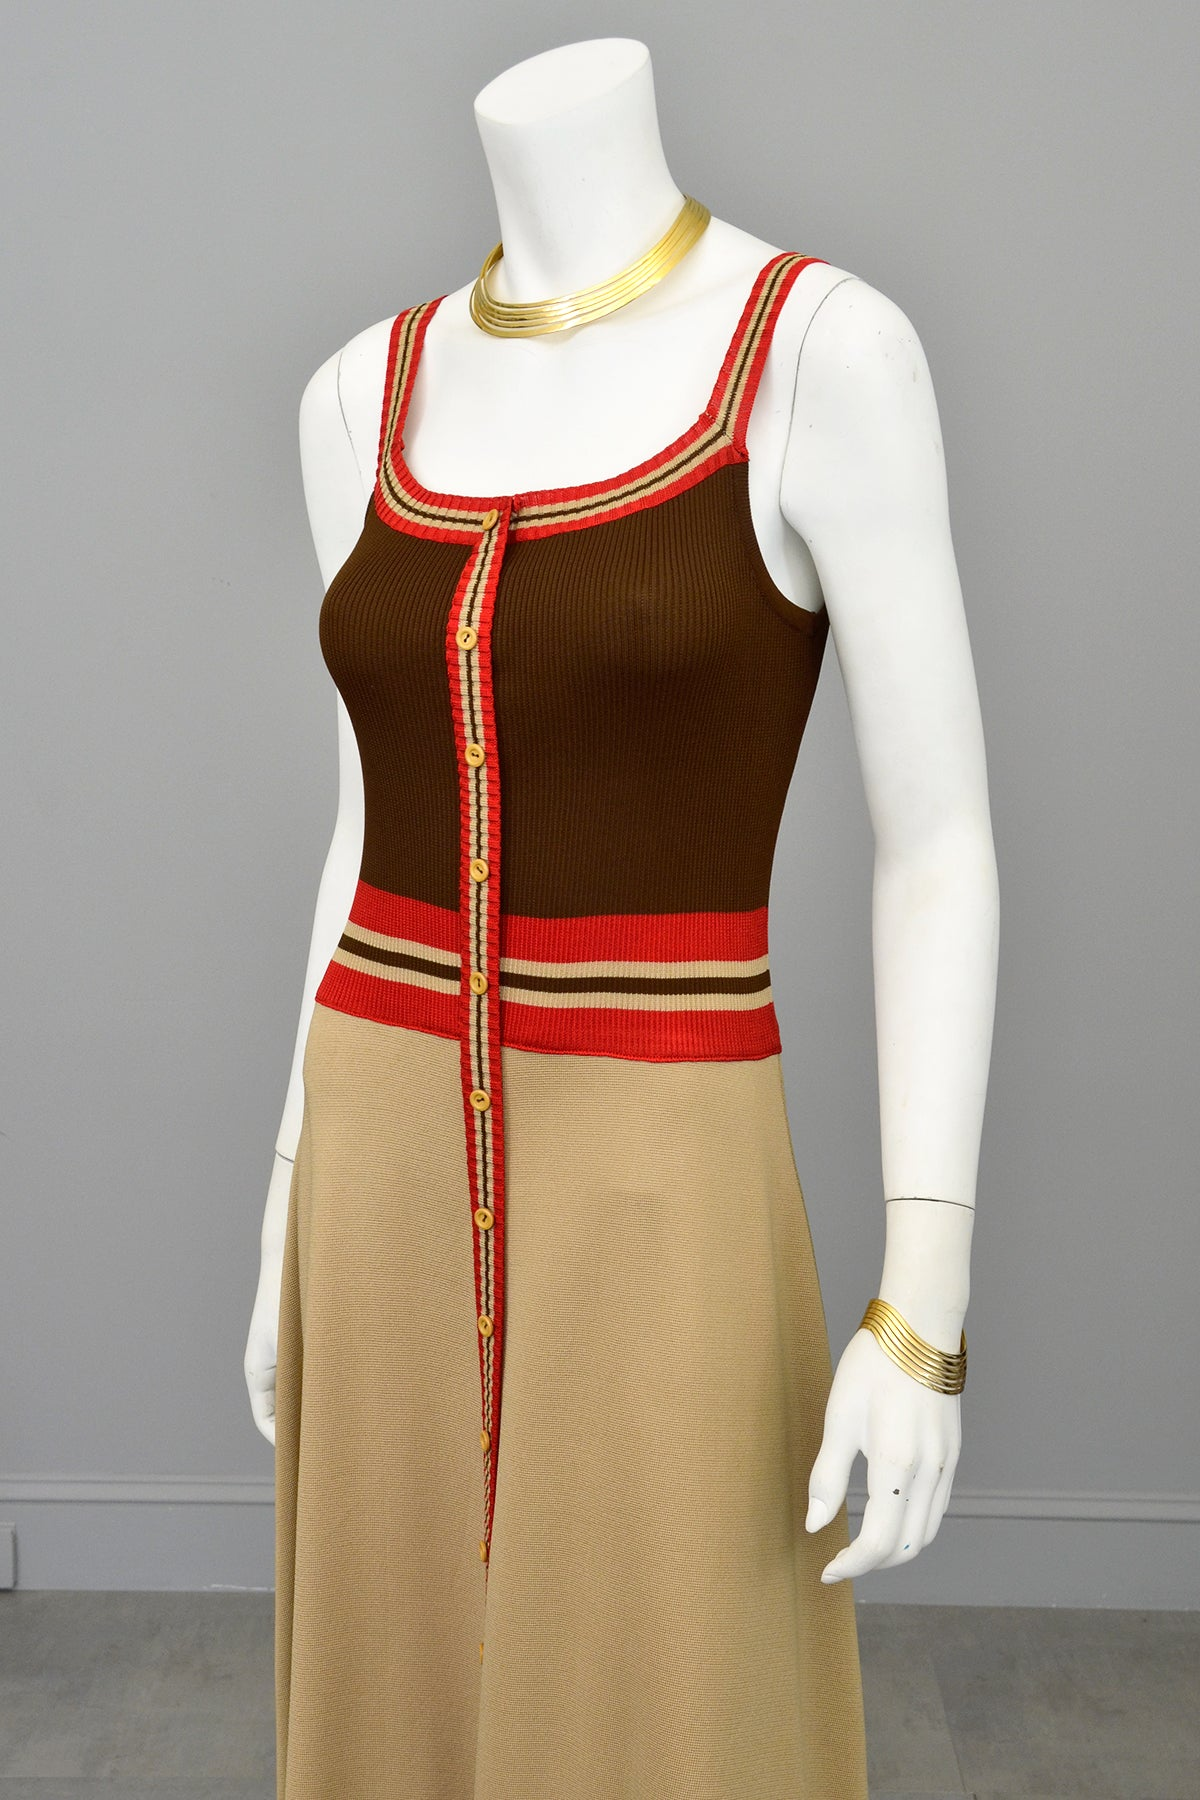 1970s Mod Retro Color Block Knit Dress by Crissa